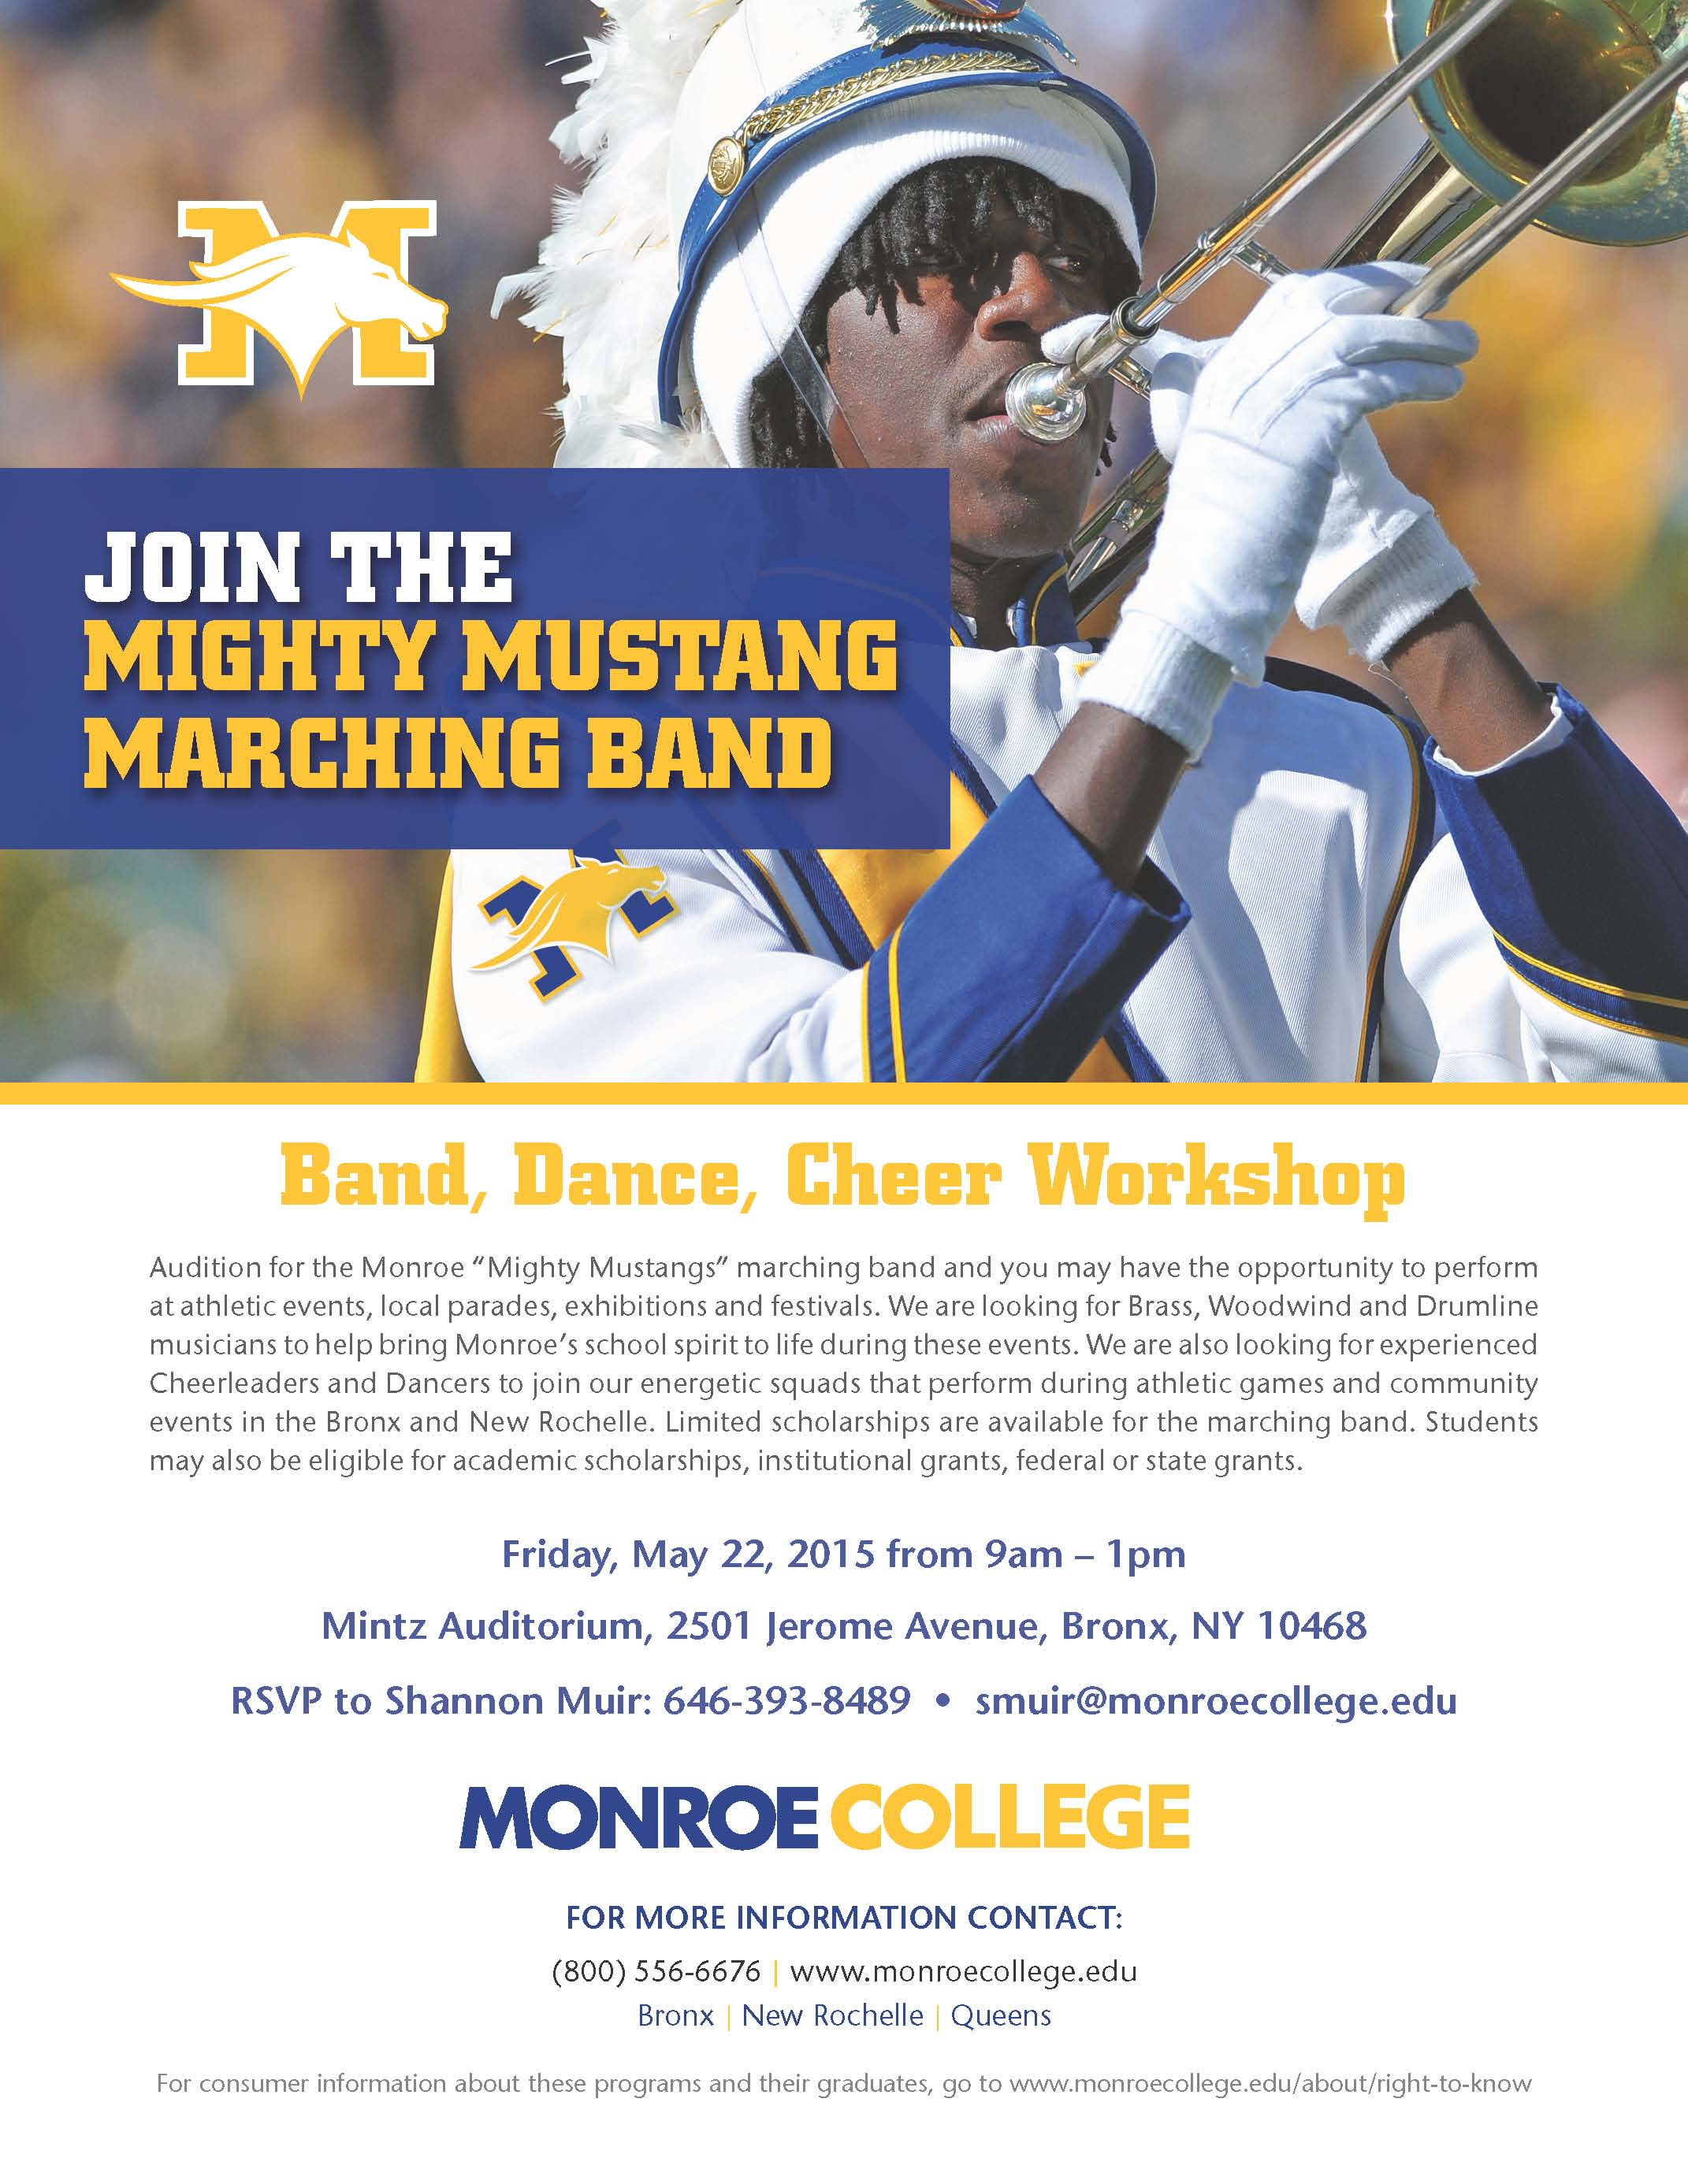 Monroe College Mighty Mustangs Auditions